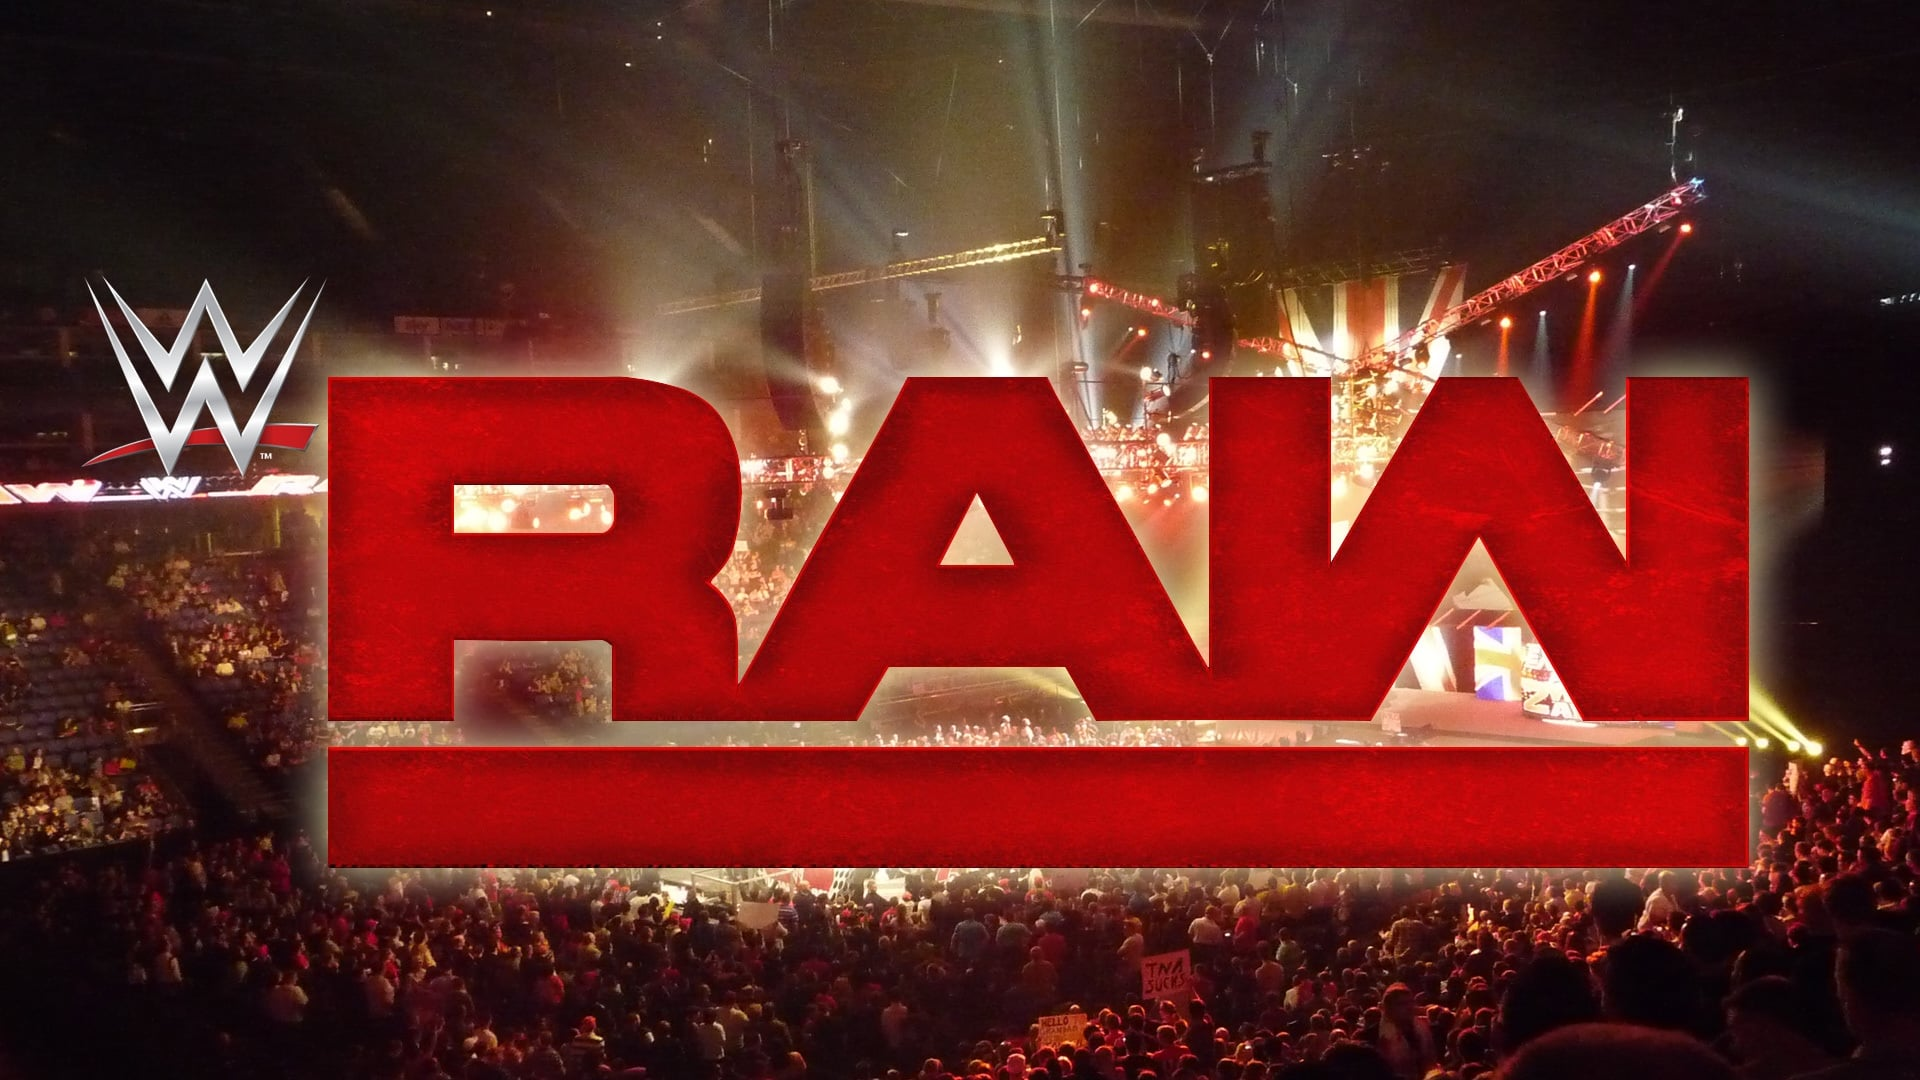 WWE Raw - Season 9 Episode 5 : RAW is WAR 401